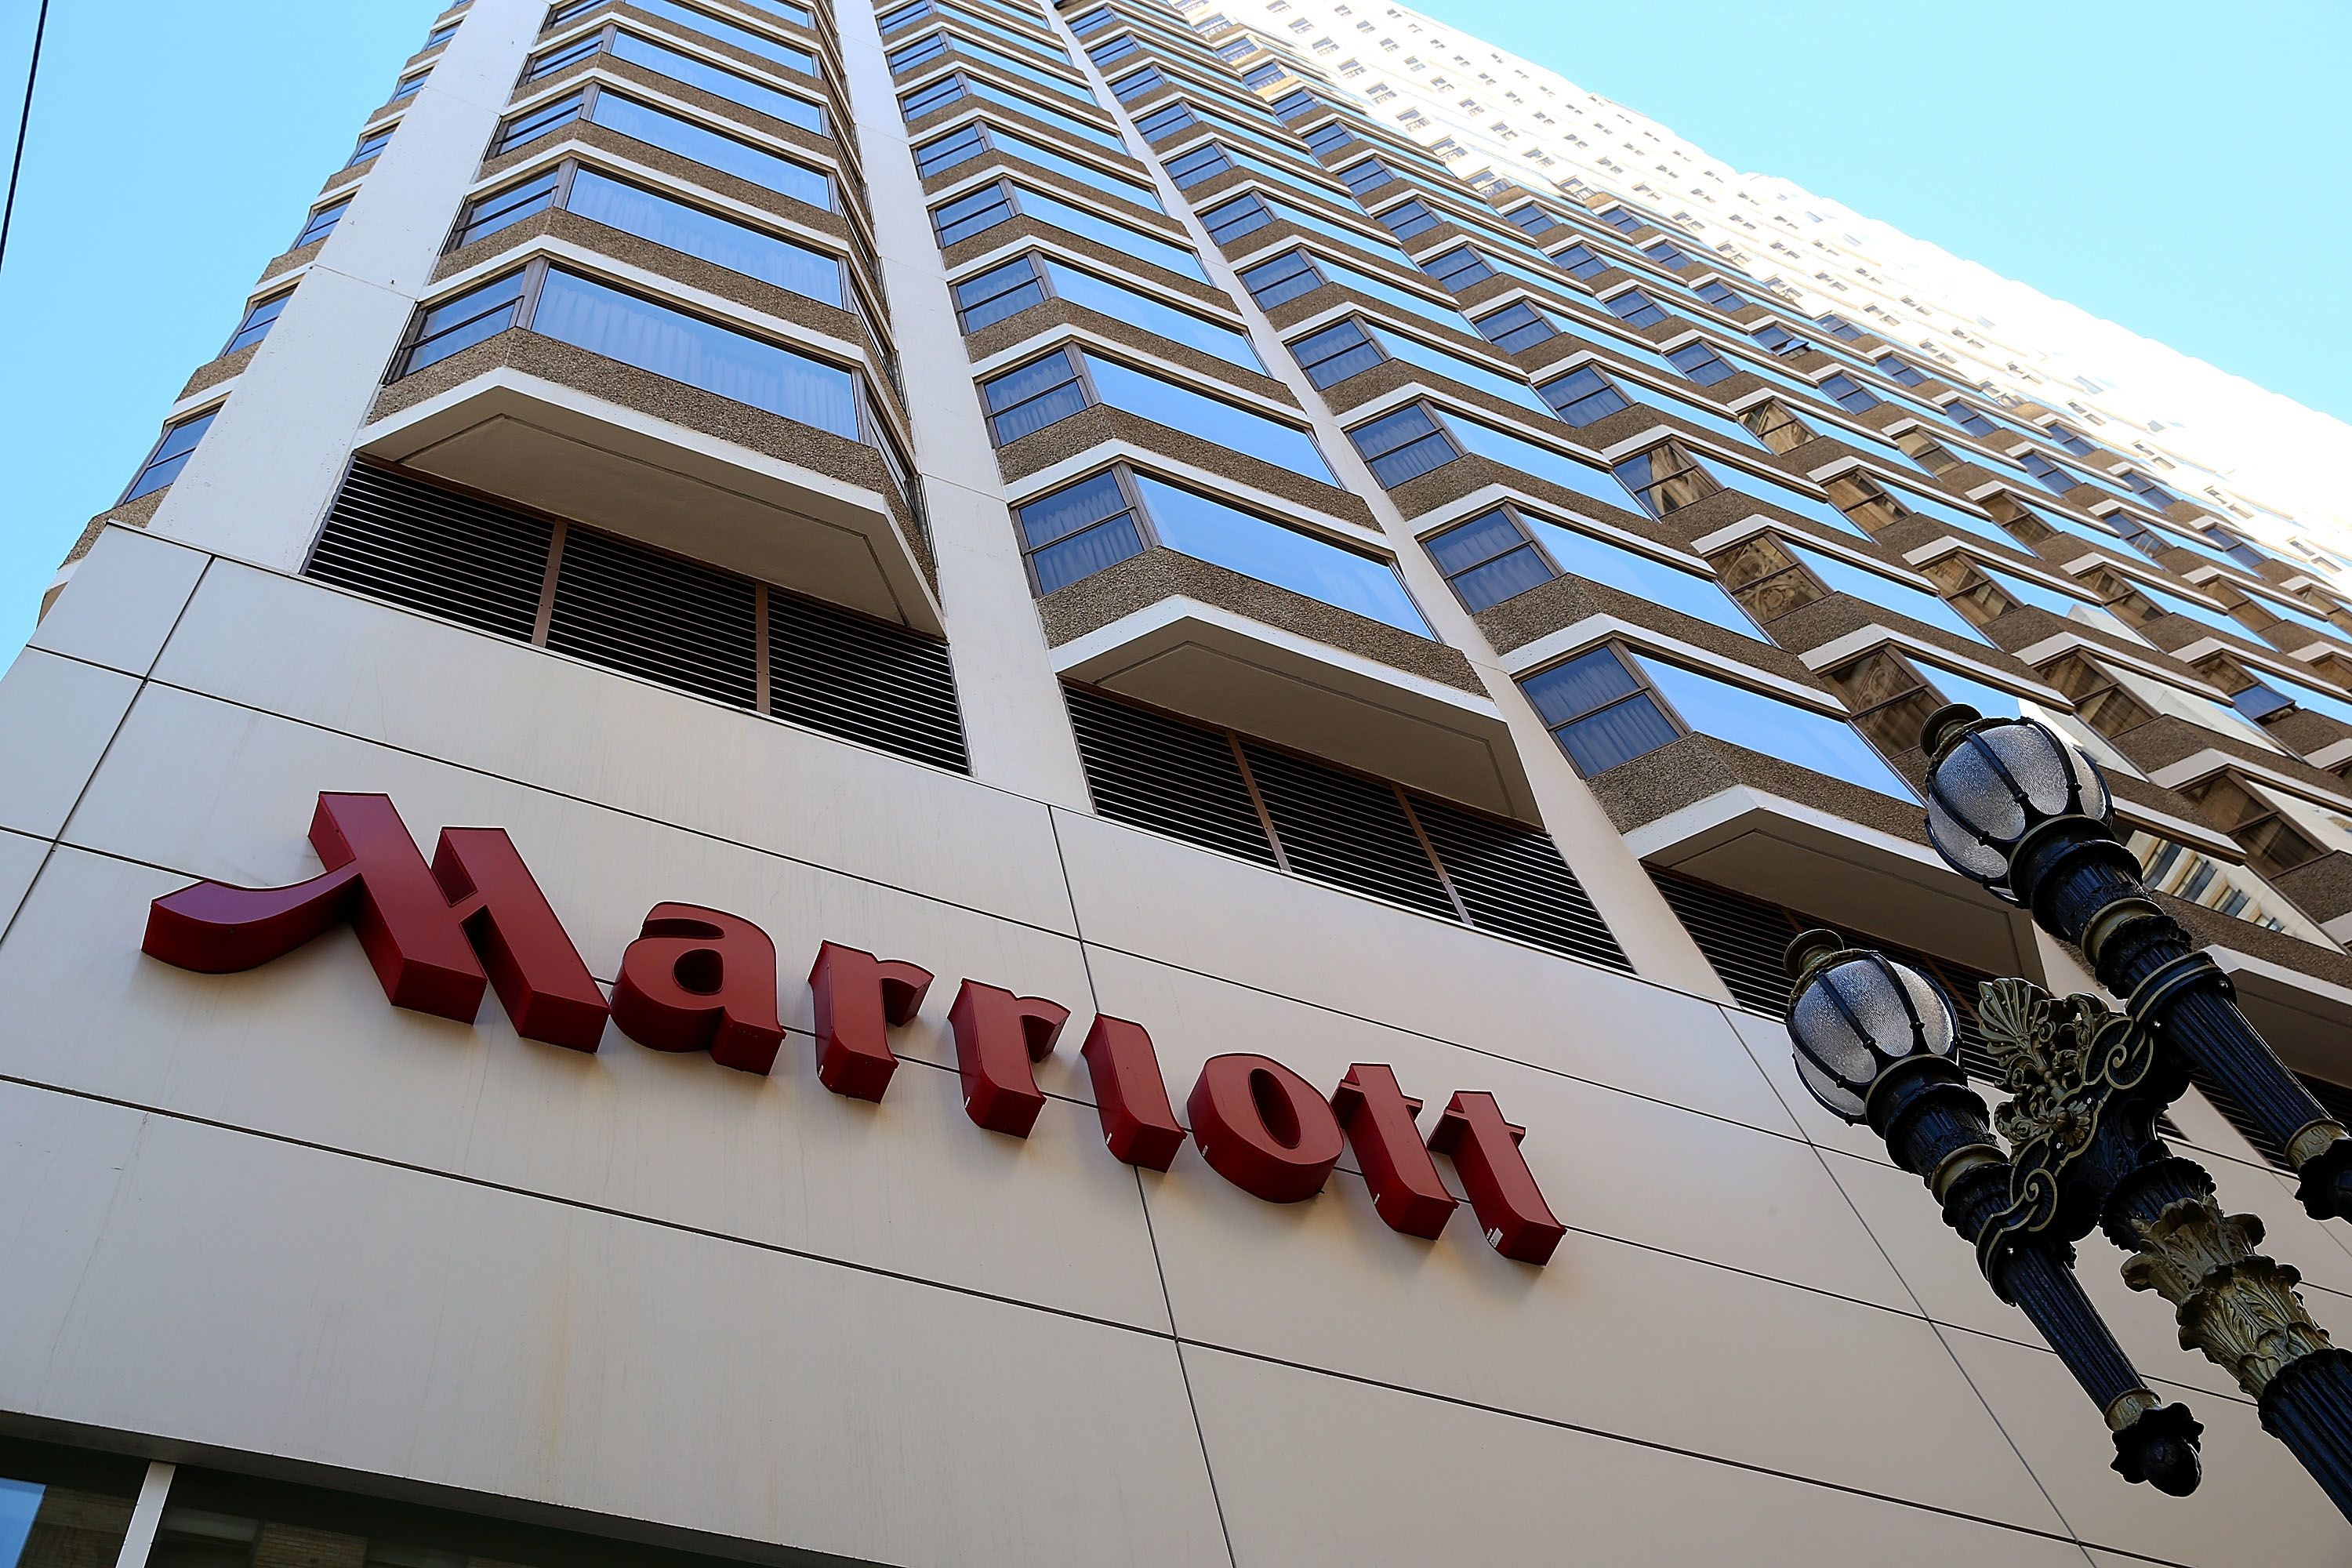 Marriott to launch home-rental platform to compete with Airbnb: Report